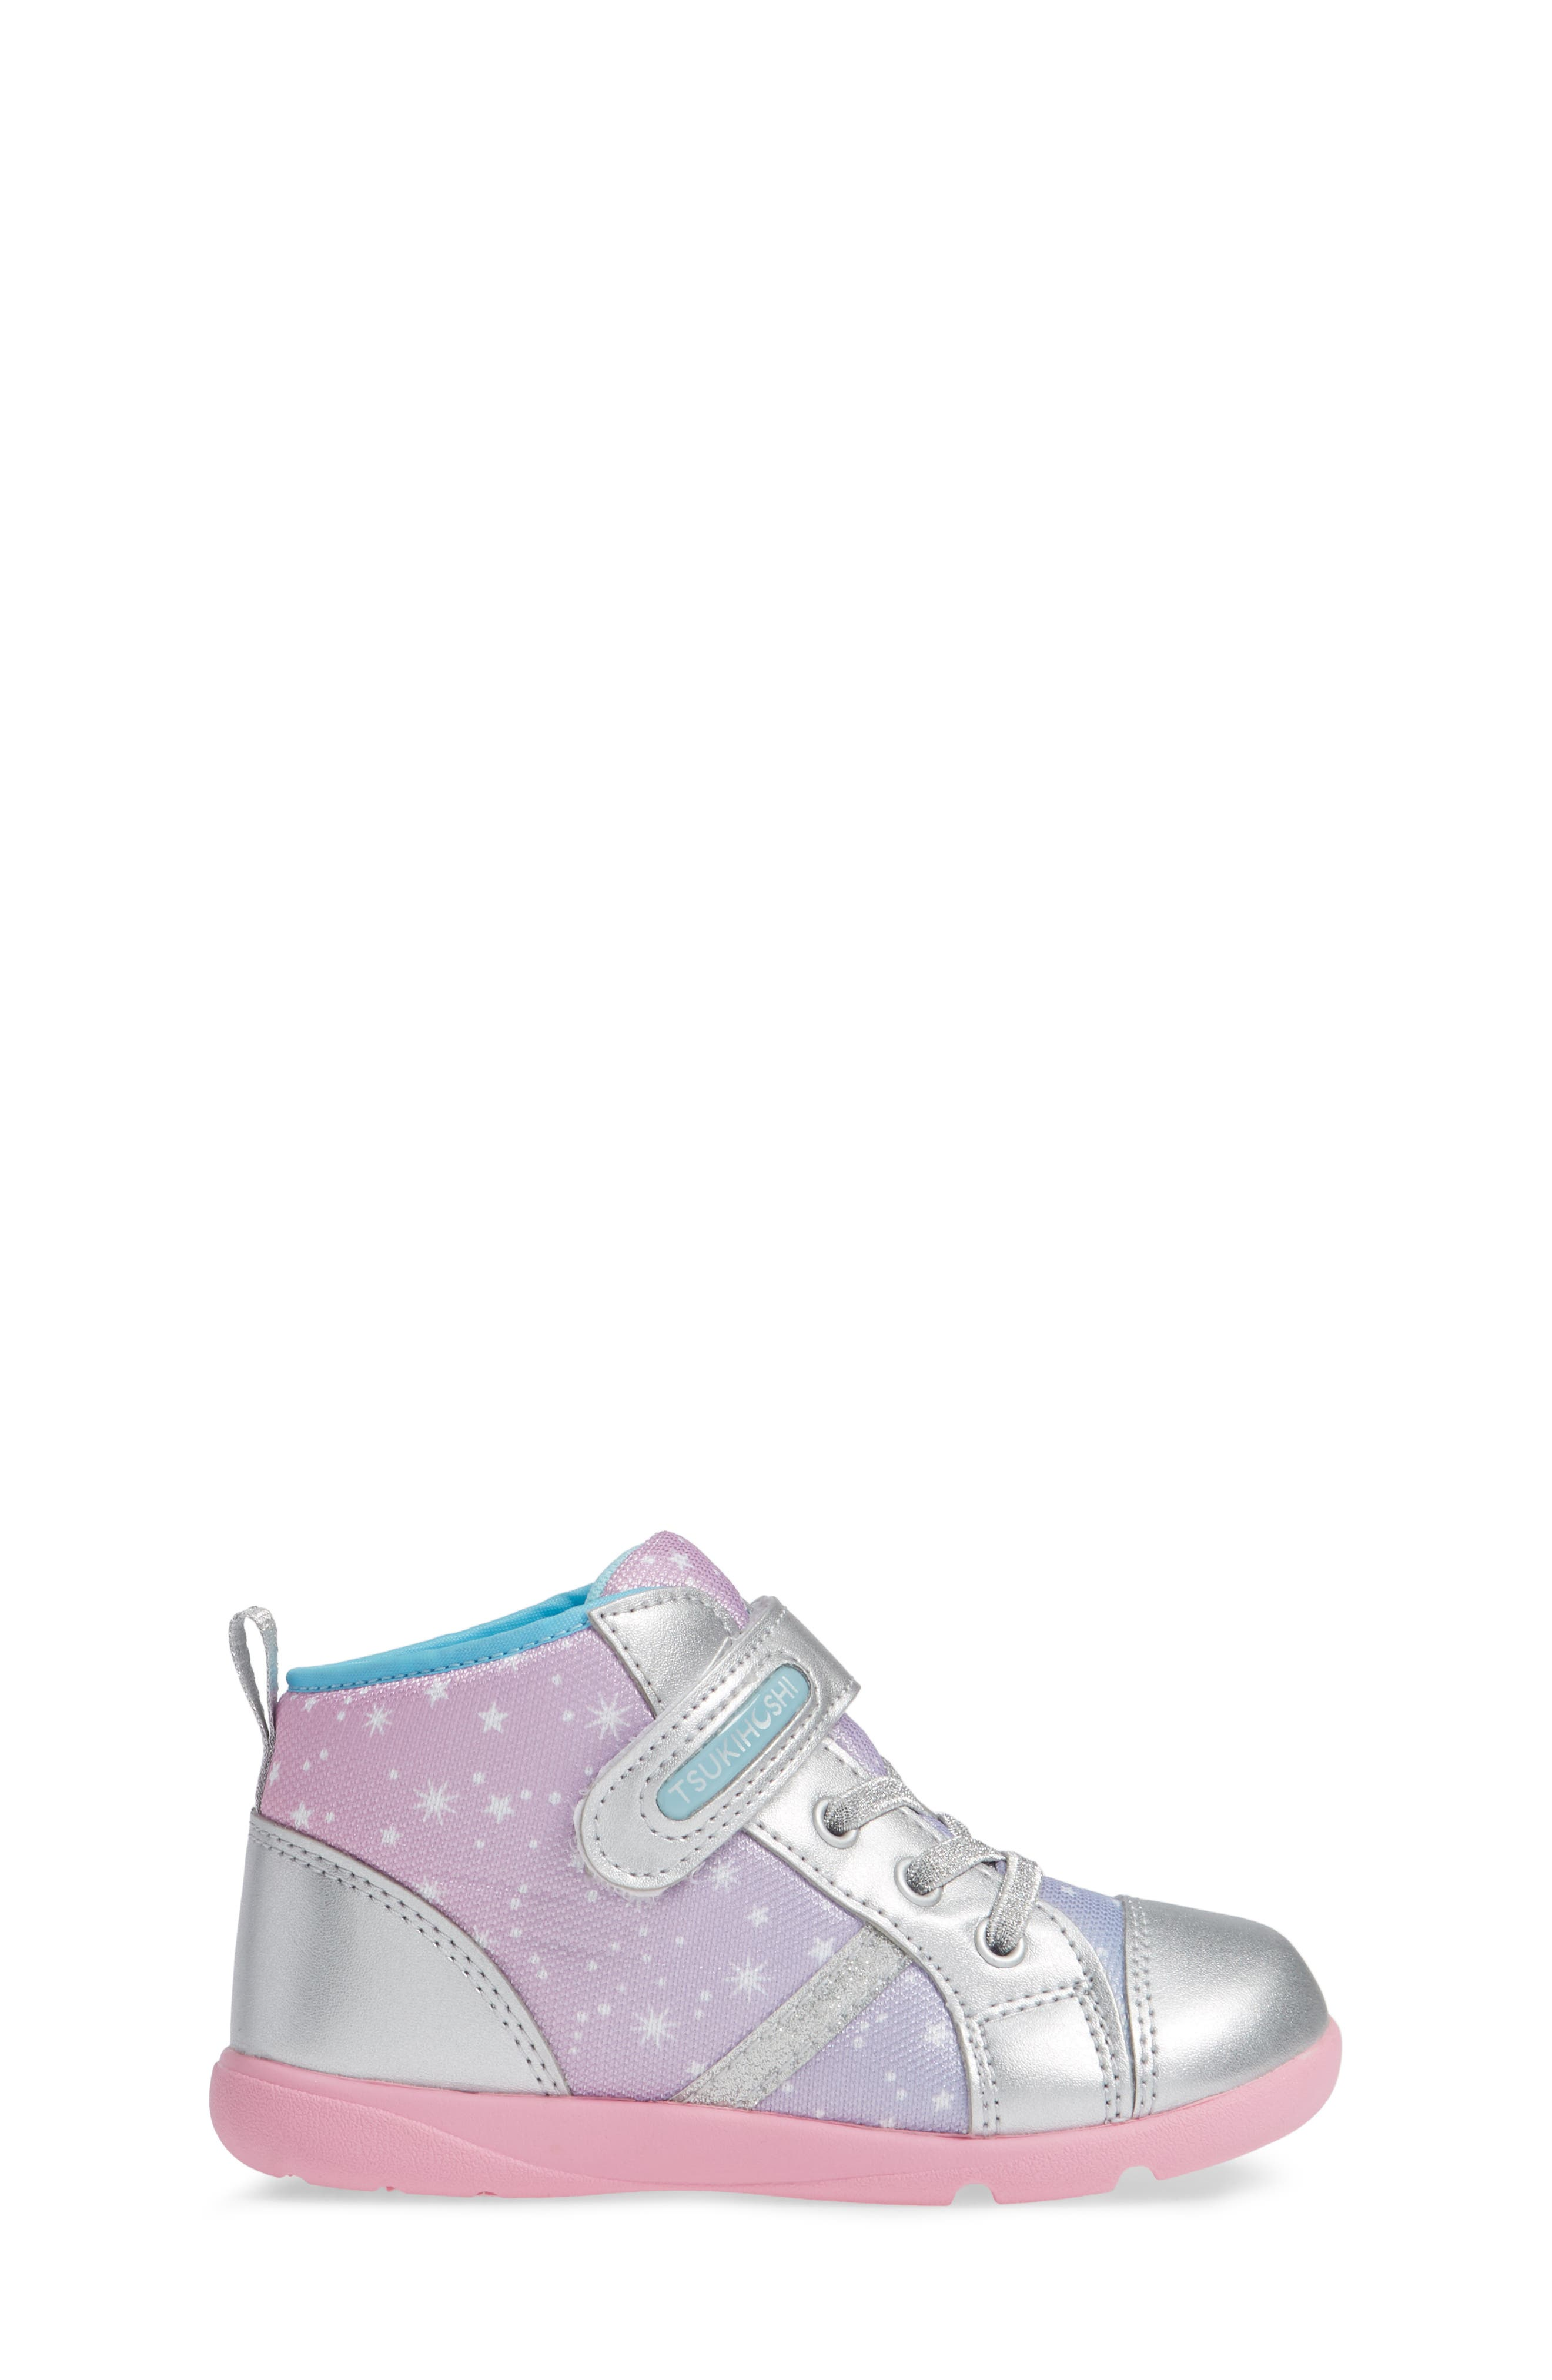 Star Washable Sneaker,                             Alternate thumbnail 3, color,                             SILVER/ PINK